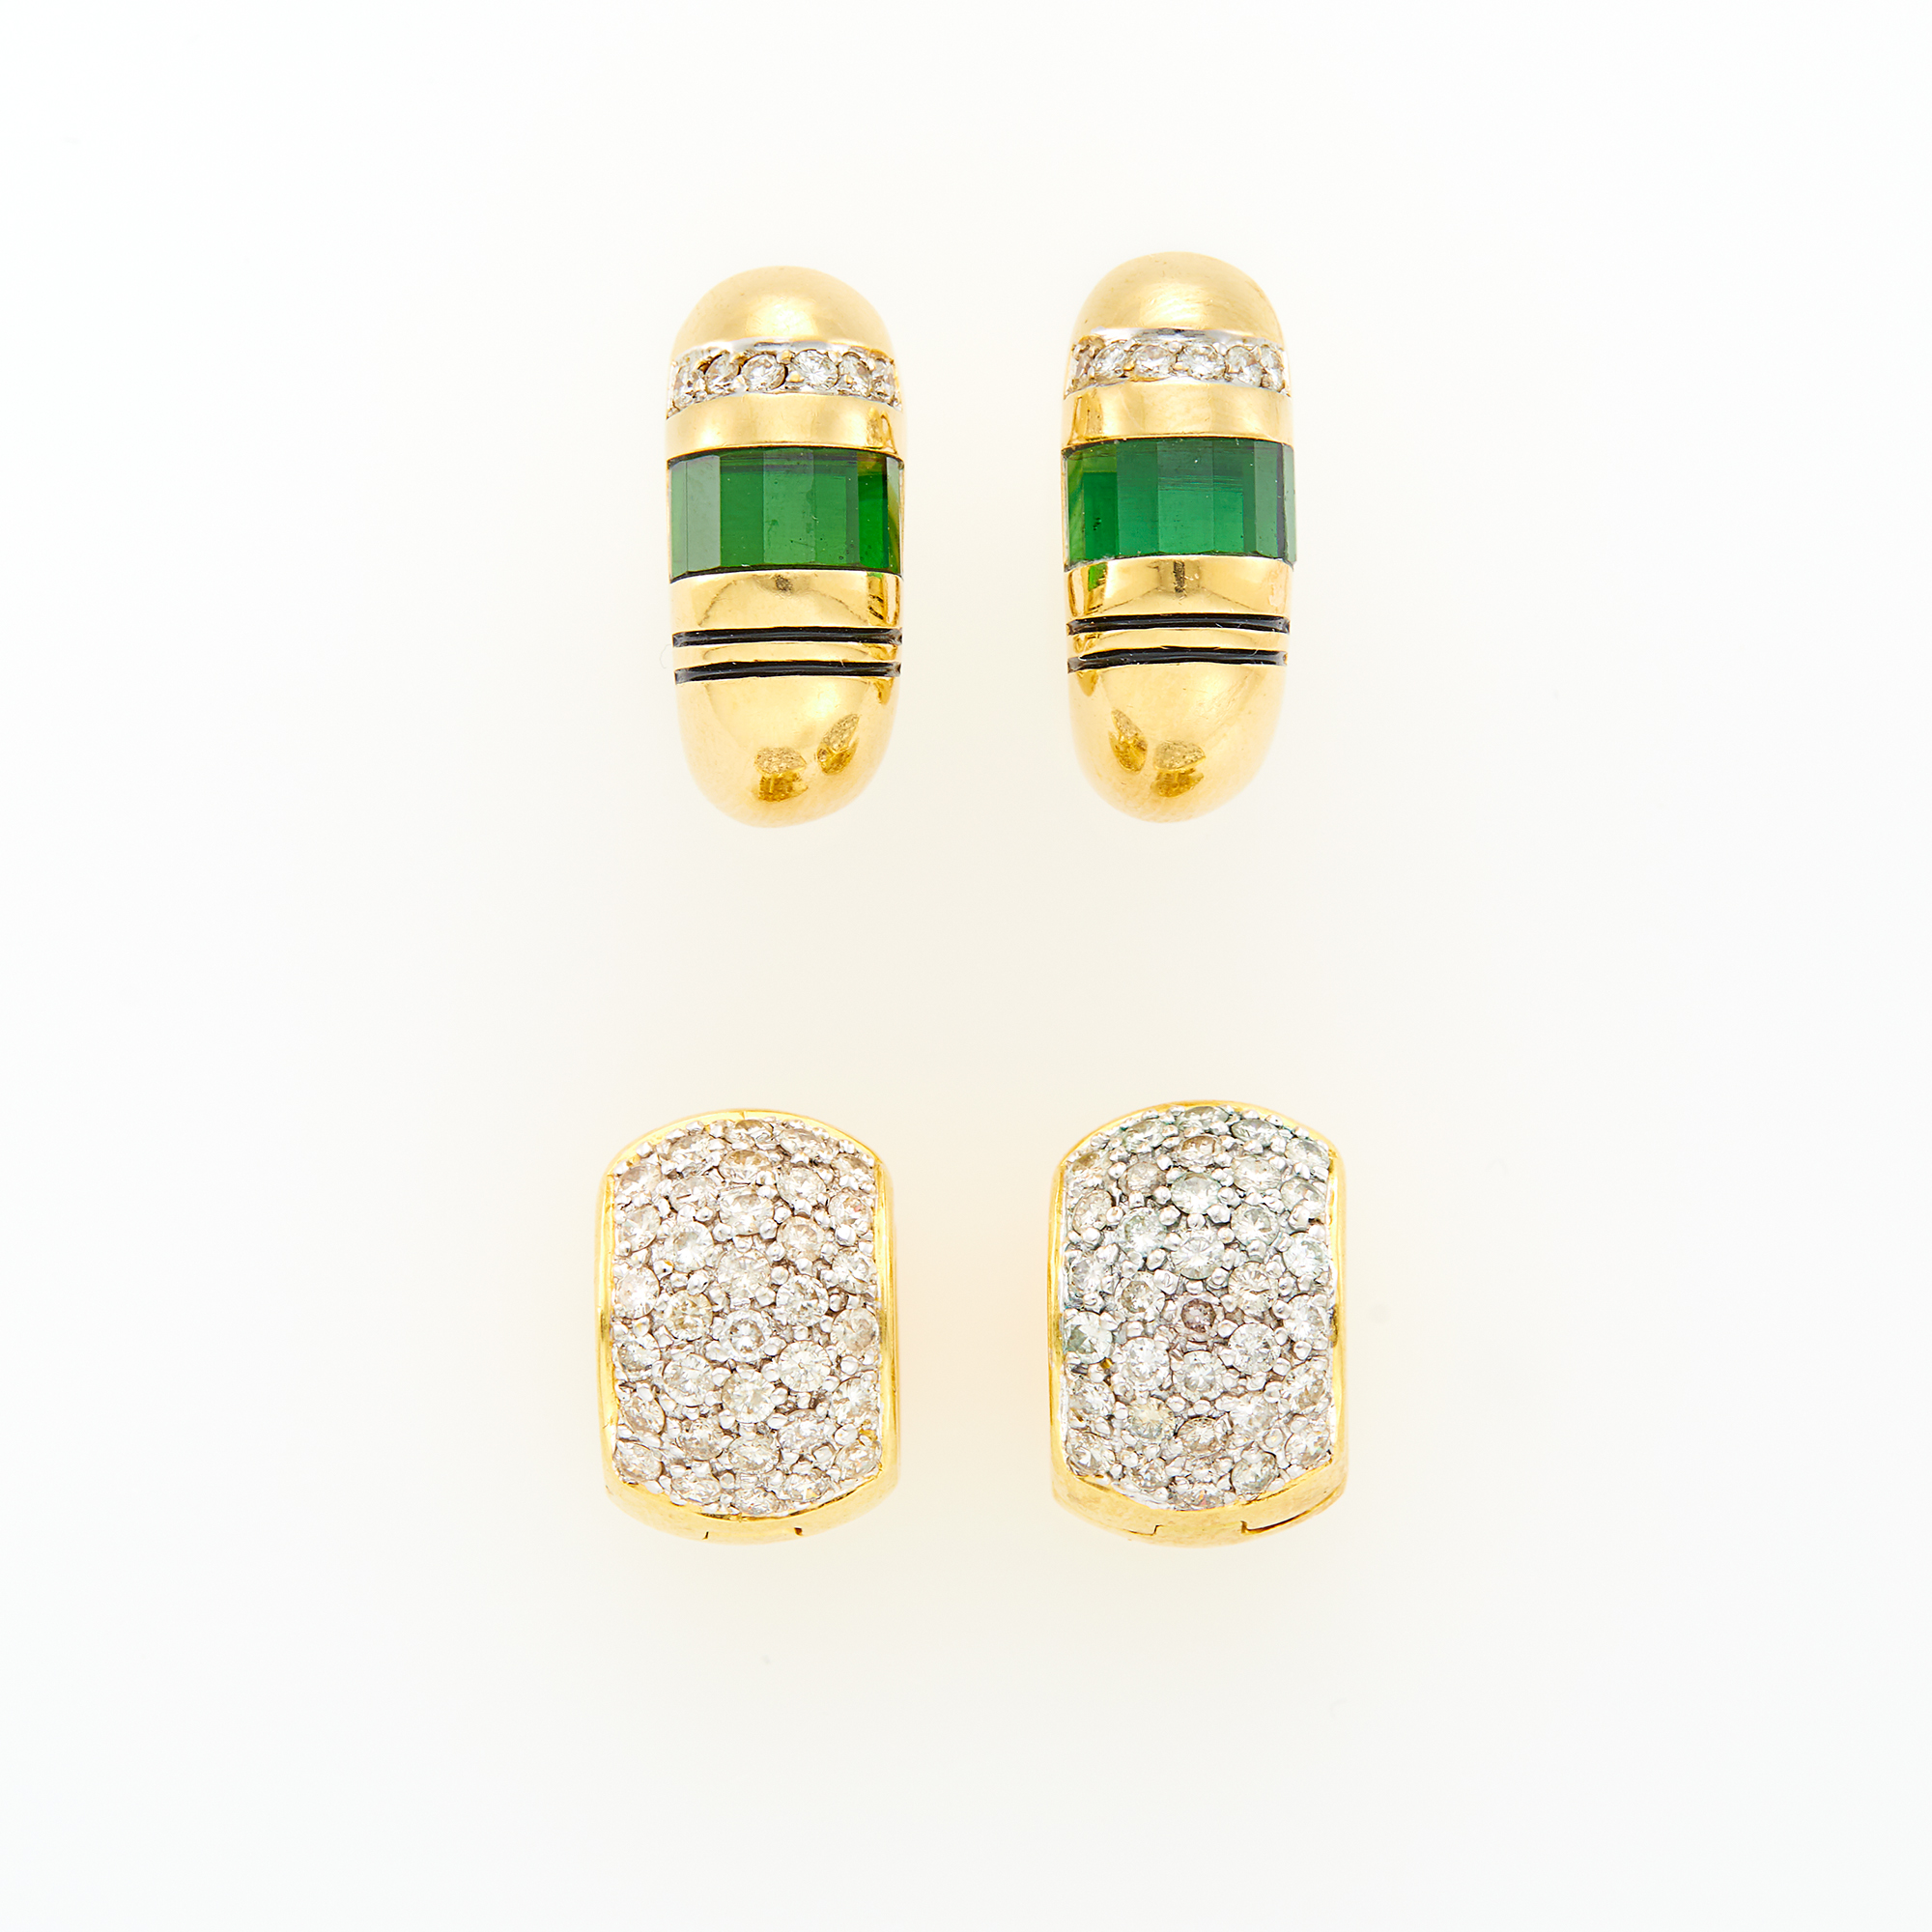 Lot image - Pair of Gold, Tourmaline, Enamel and Diamond Earrings and Gold and Diamond Huggie Earrings